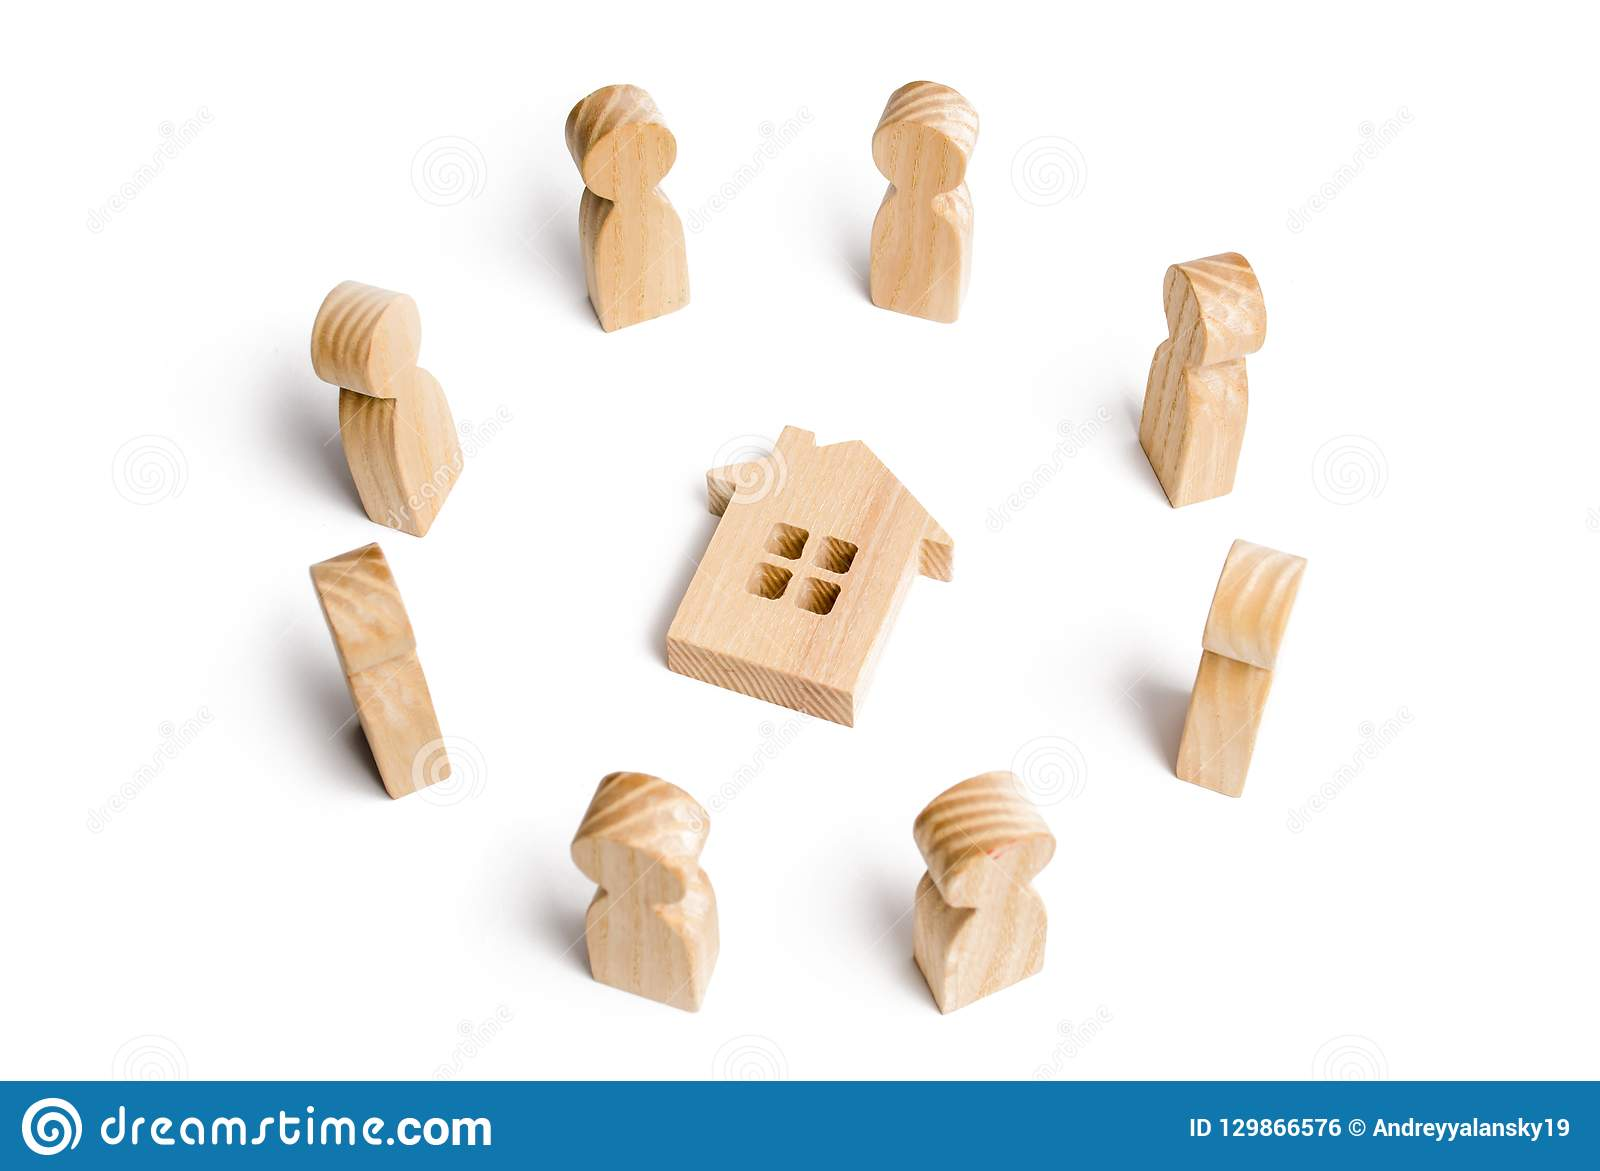 Wooden figurines of people stand around the house. Search for a new home and real estate. Buying or selling a home.